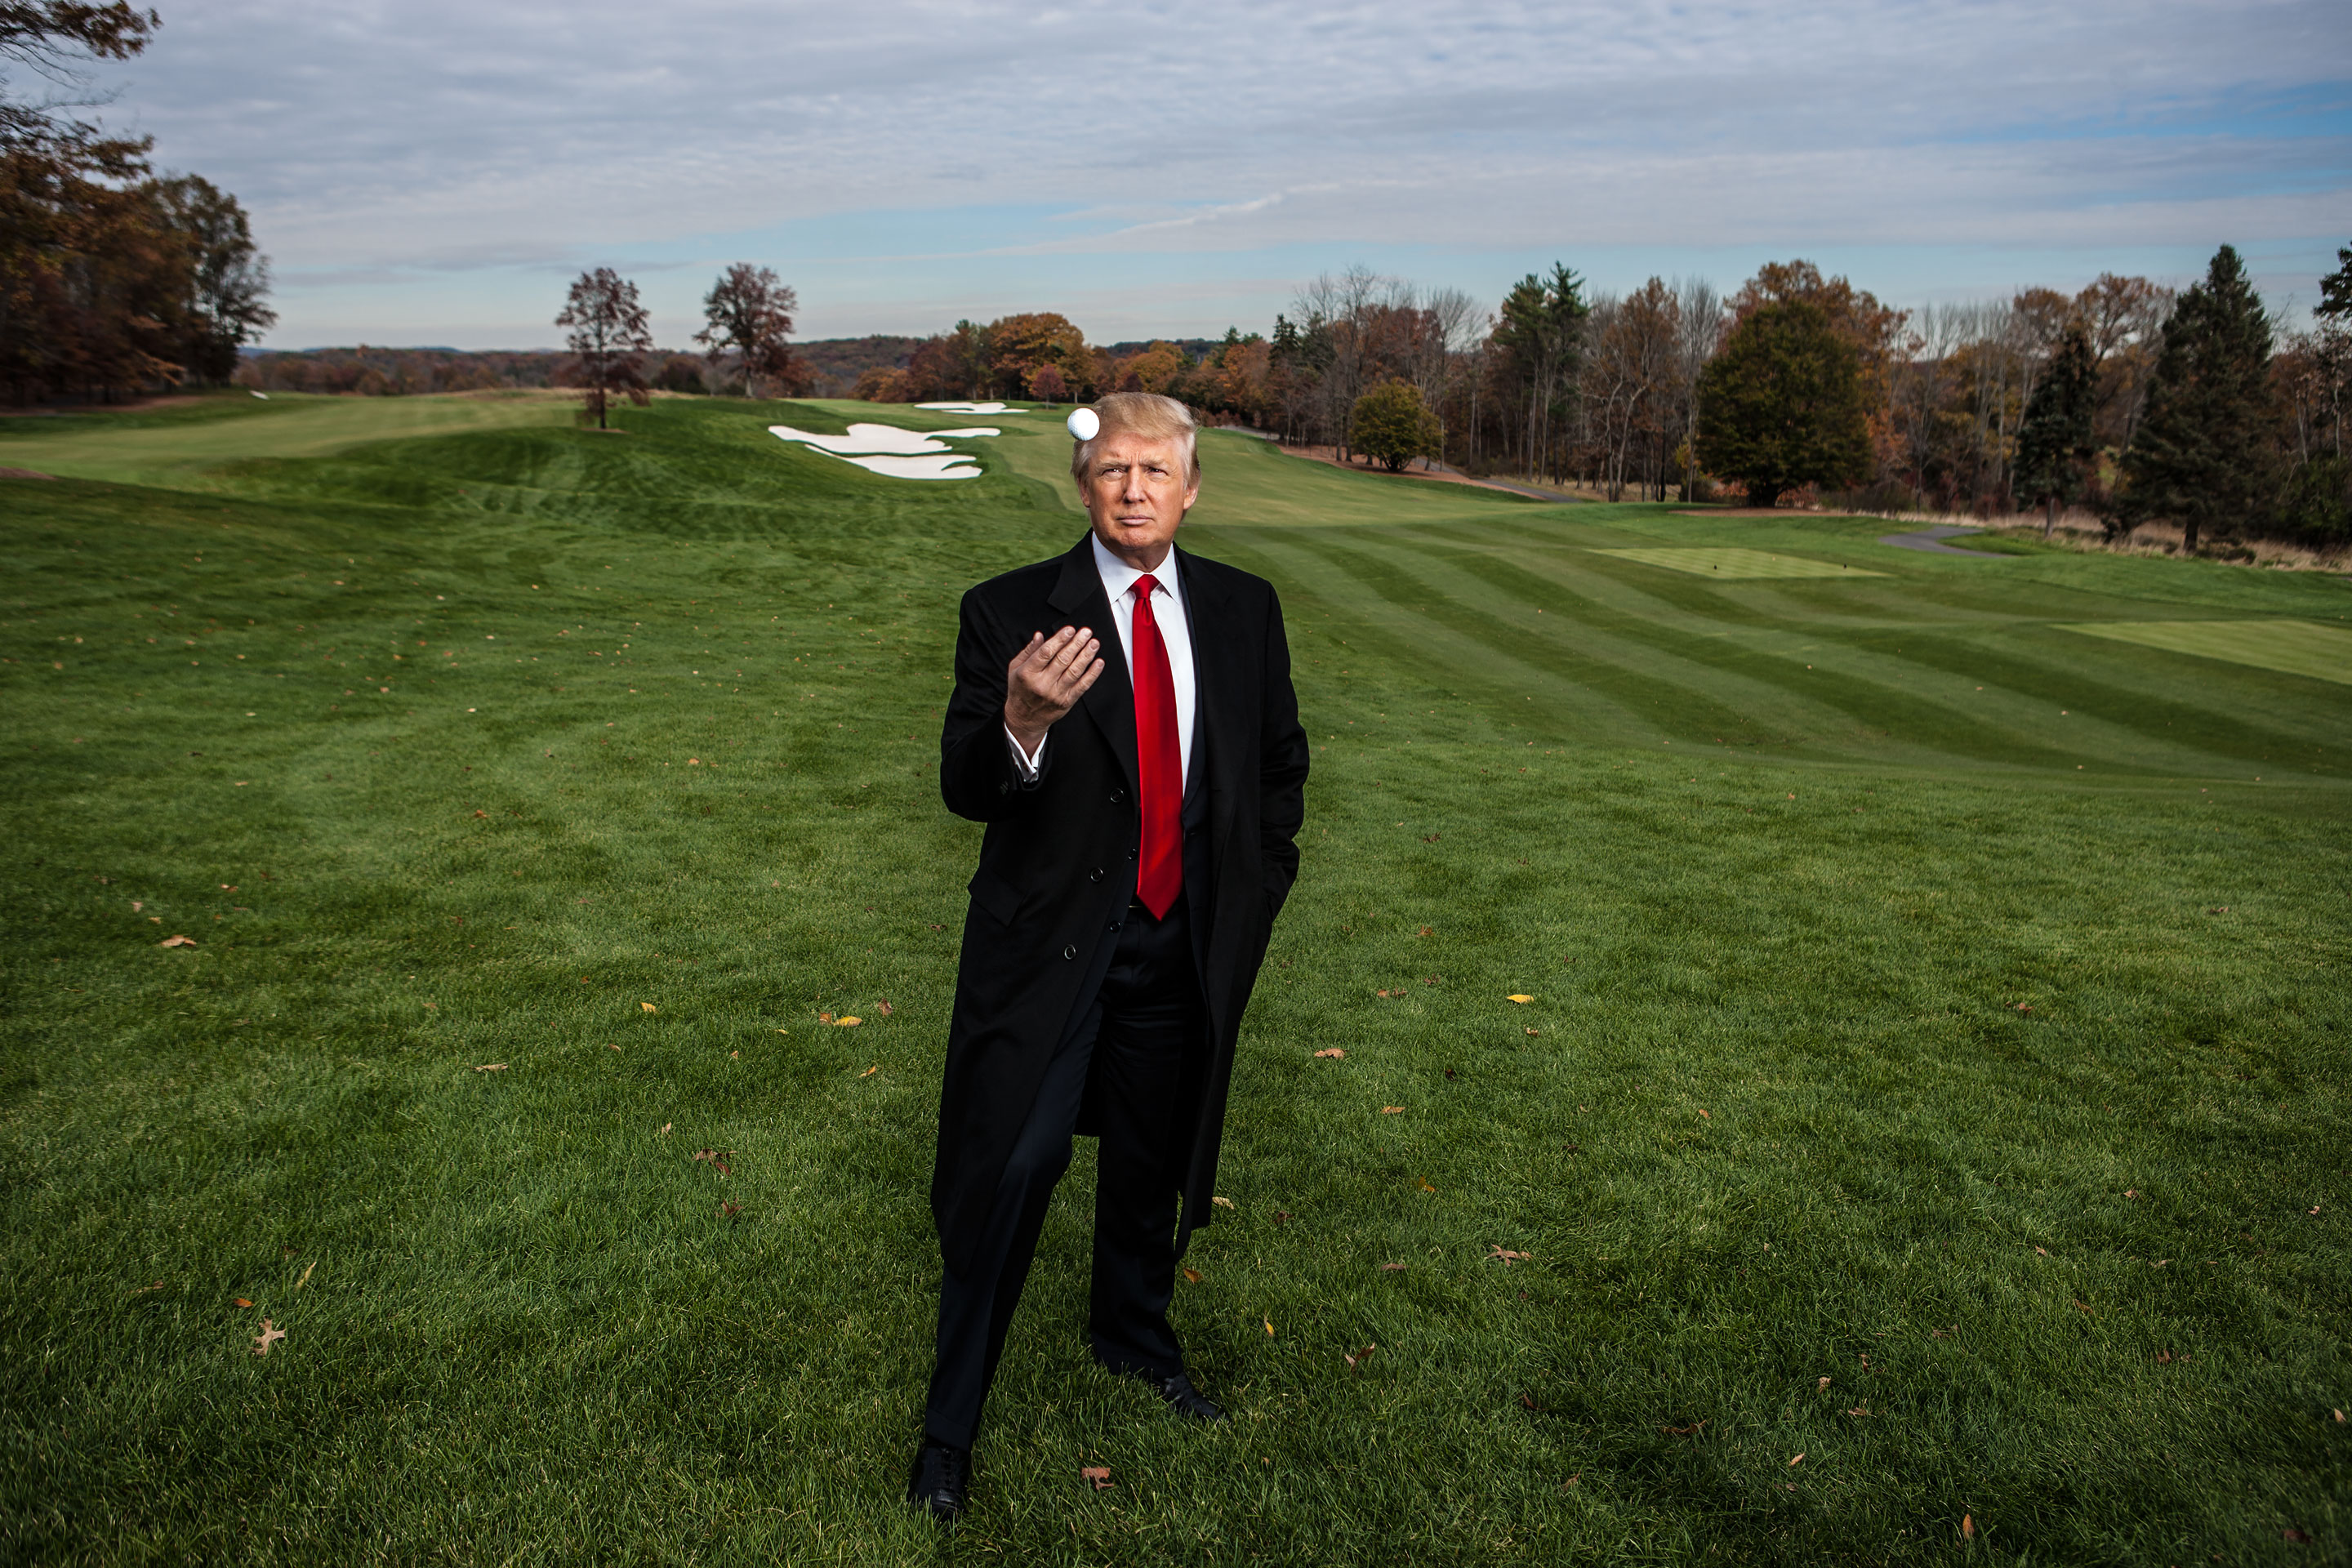 Donald Trump at his ­Bedminster, N.J., golf club in 2006. He took a $39 million tax deduction on the property under the conservation easement law.